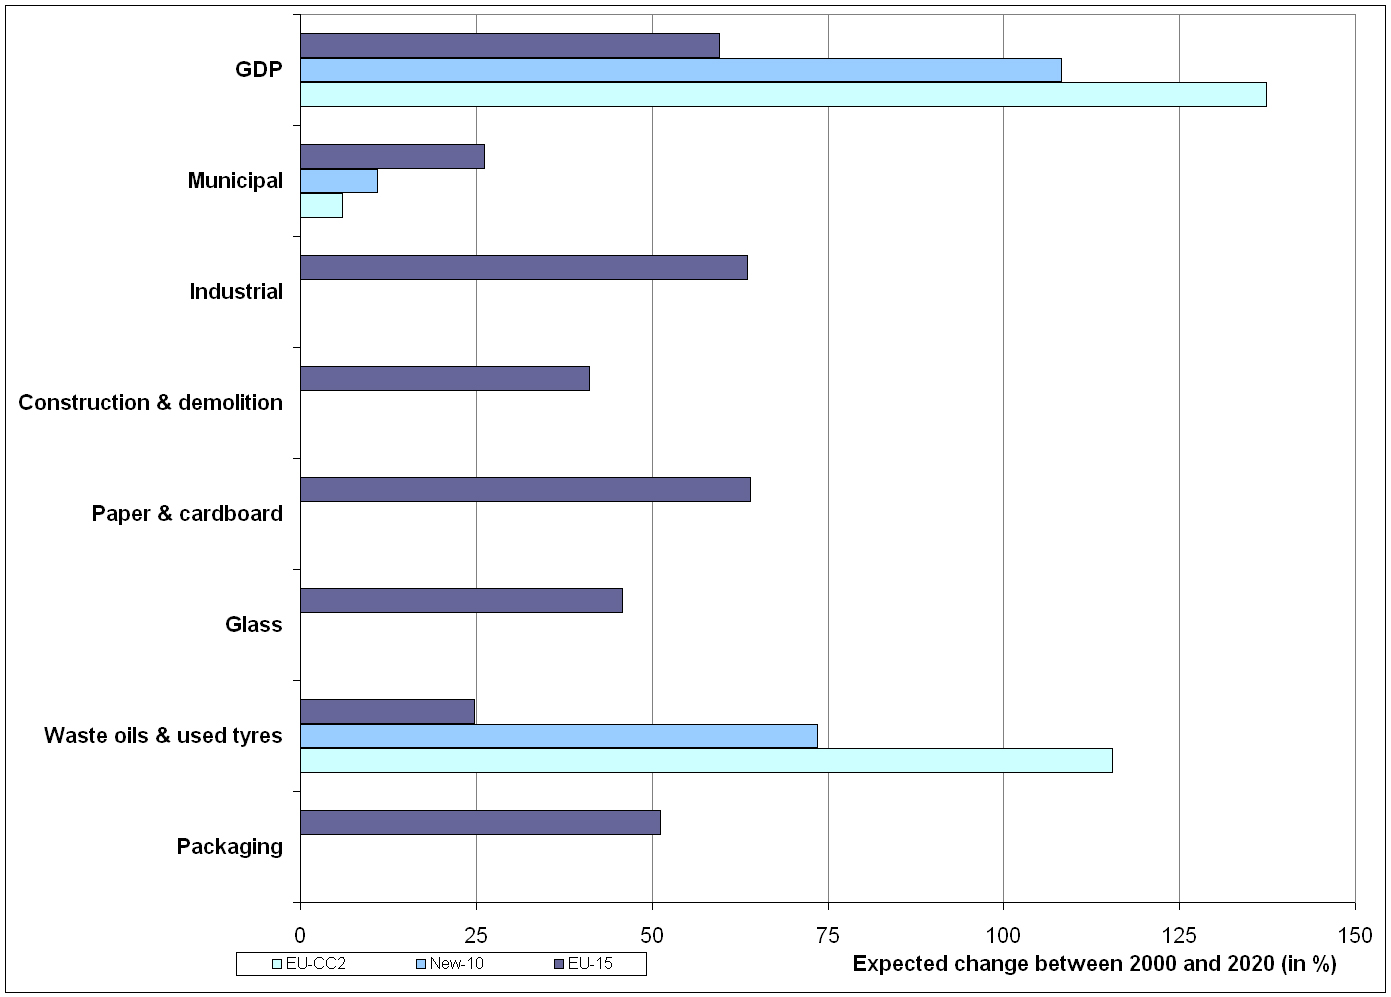 Growths in waste quantities and GDP (2020/2000)